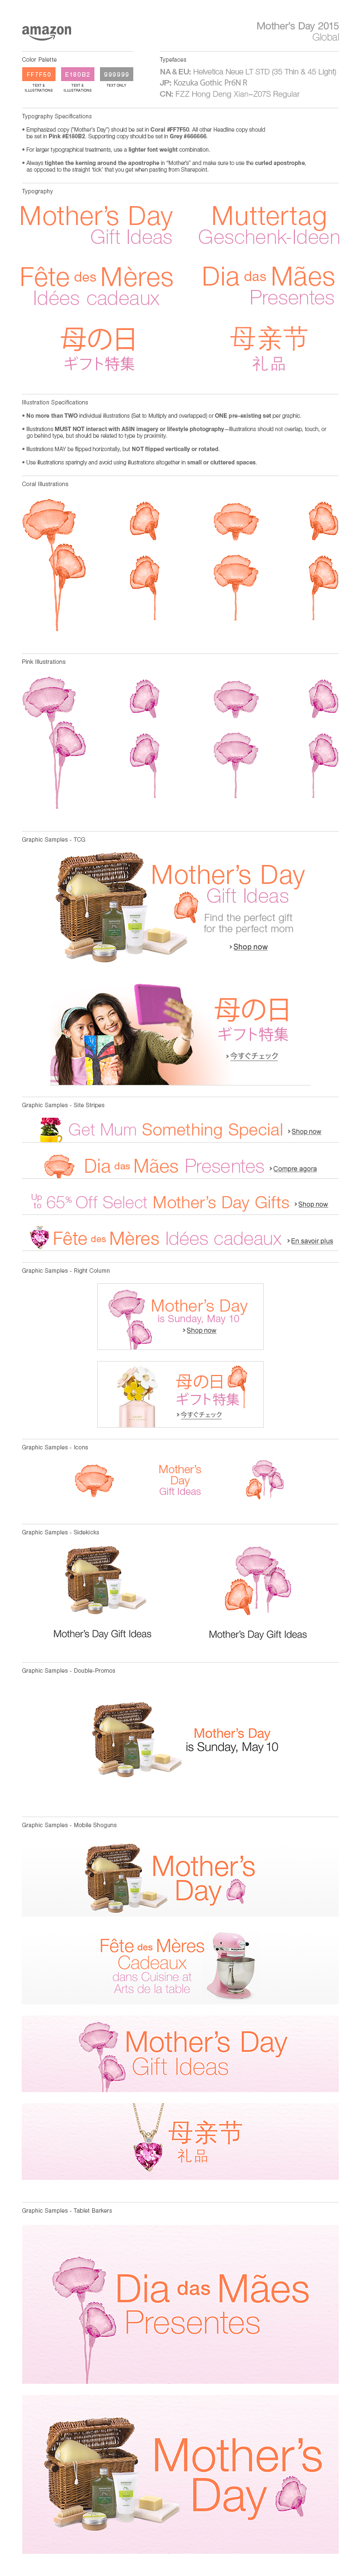 2015_mothers-day_styleguide.jpg